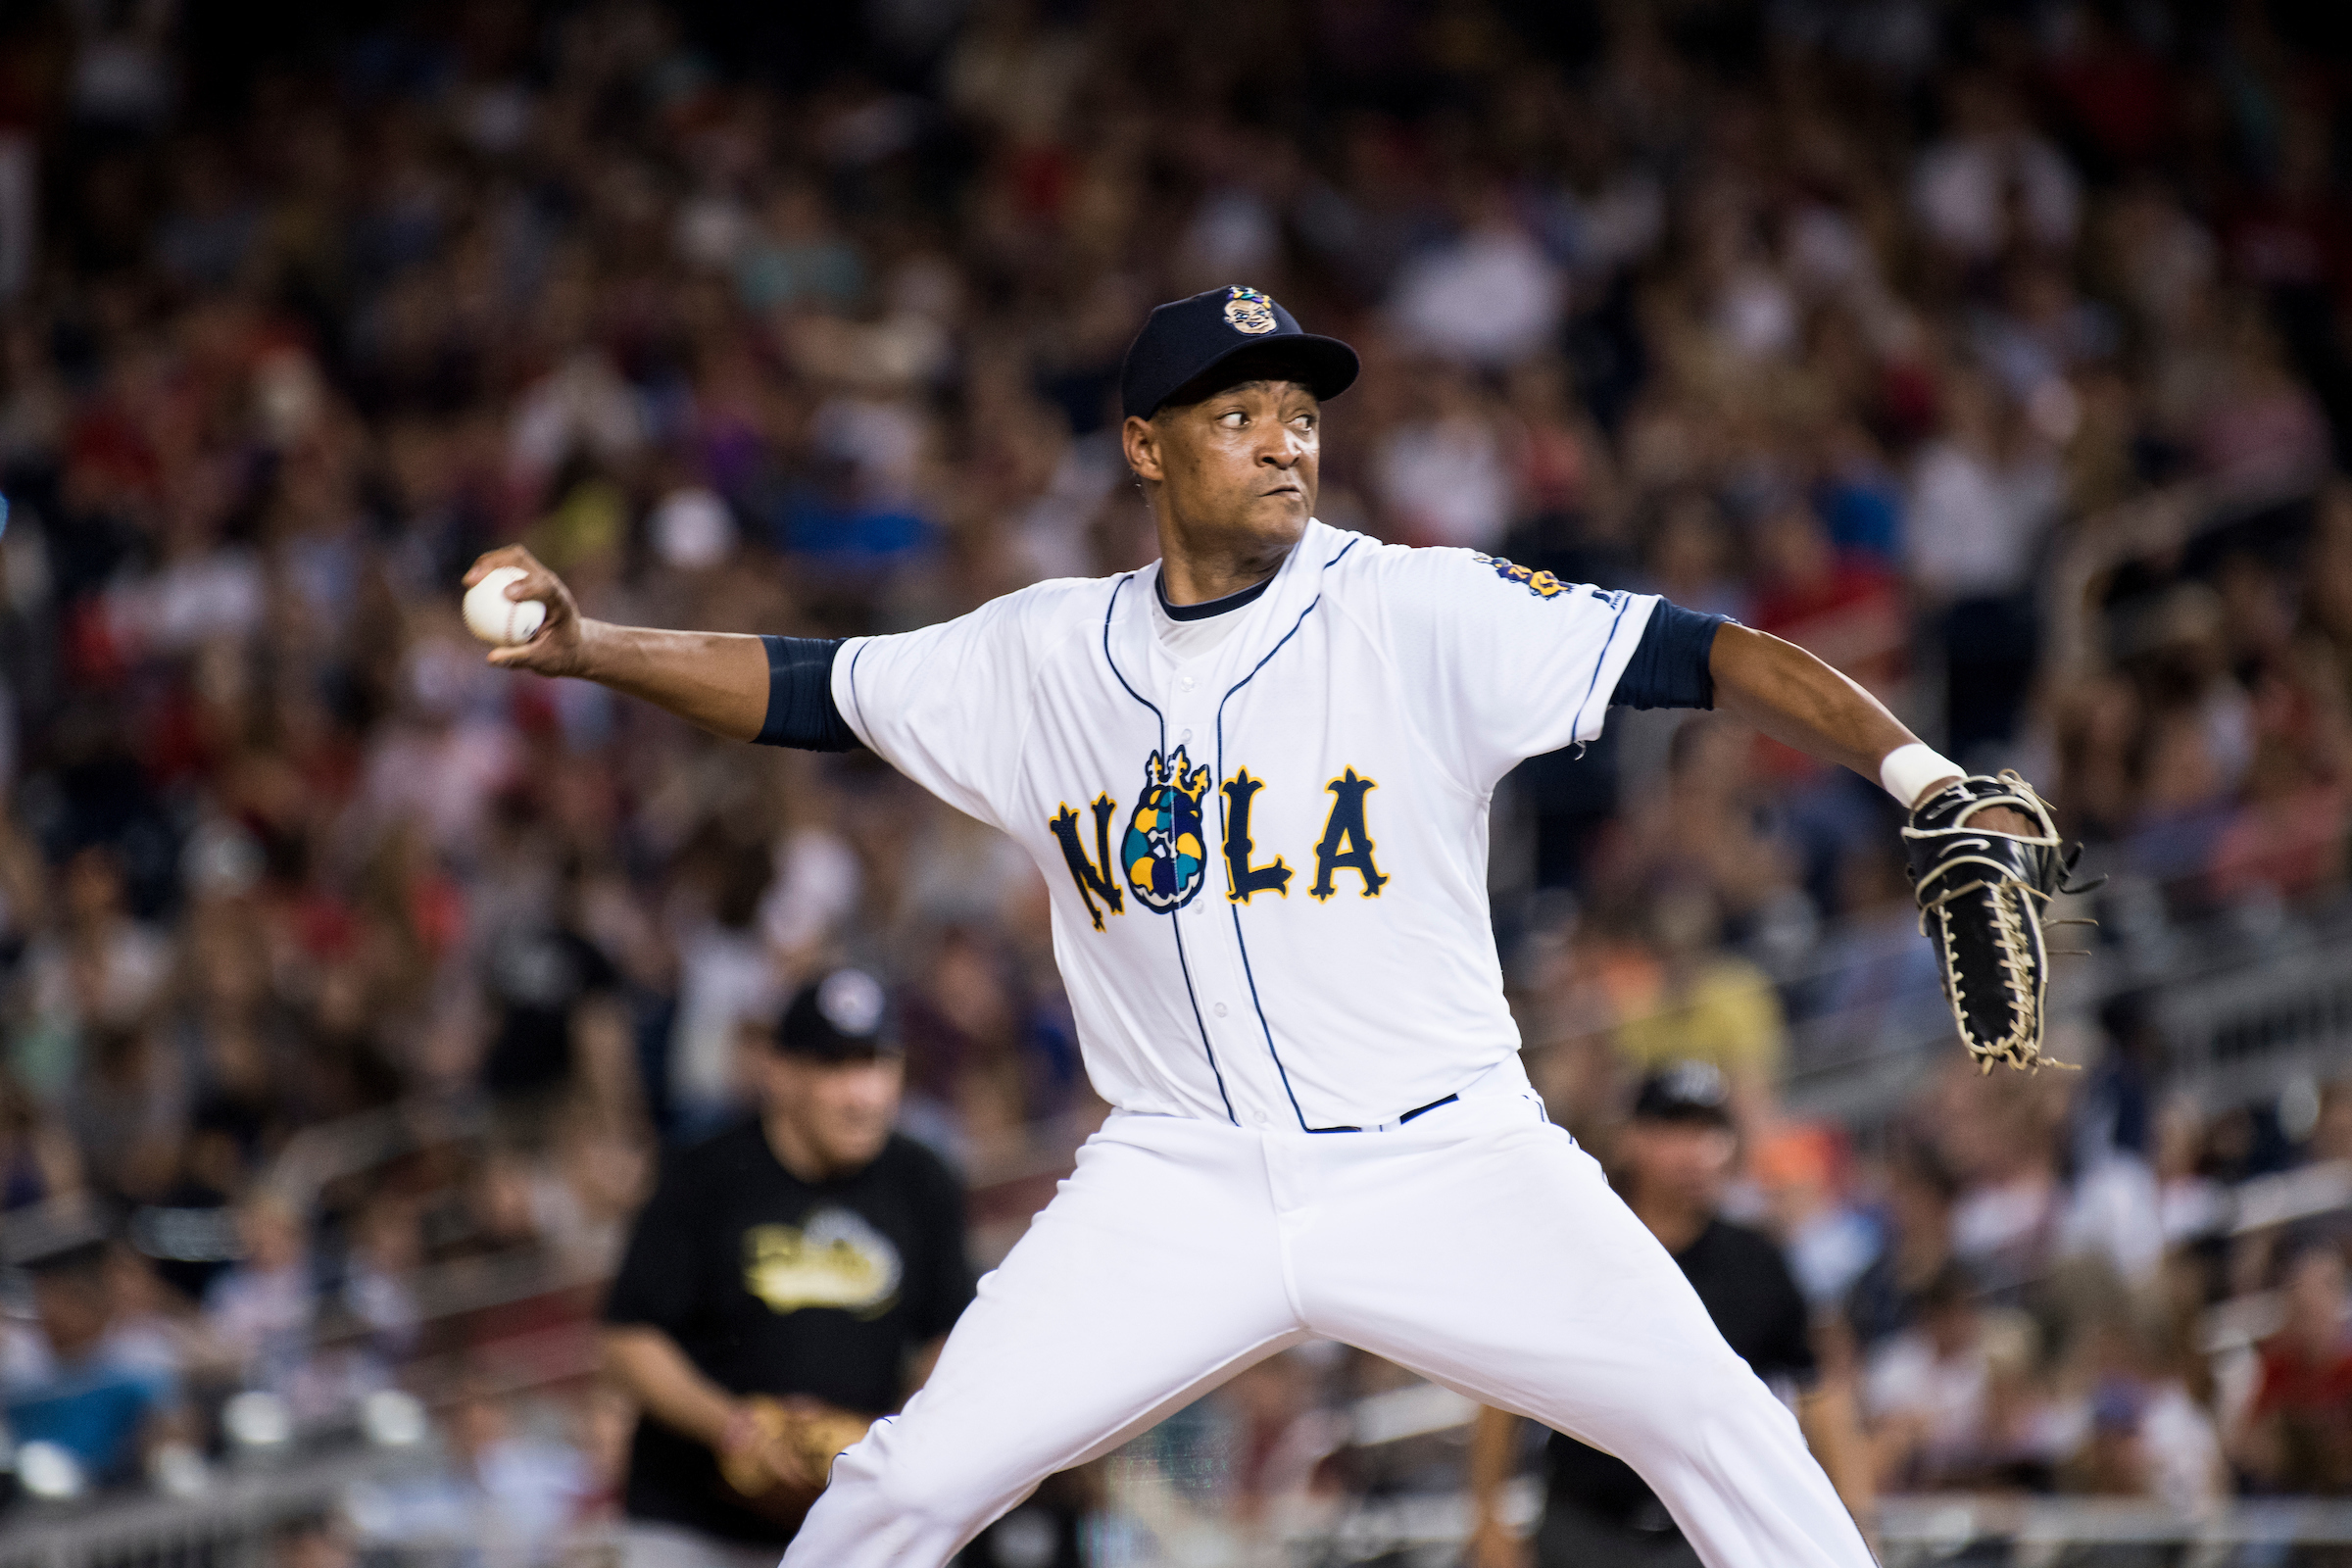 UNITED STATES - JUNE 15: Rep. Cedric Richmond, D-La., pitches during the annual Congressional Baseball Game at Nationals Park in Washington on Thursday, June 15, 2017. (Photo By Bill Clark/CQ Roll Call)